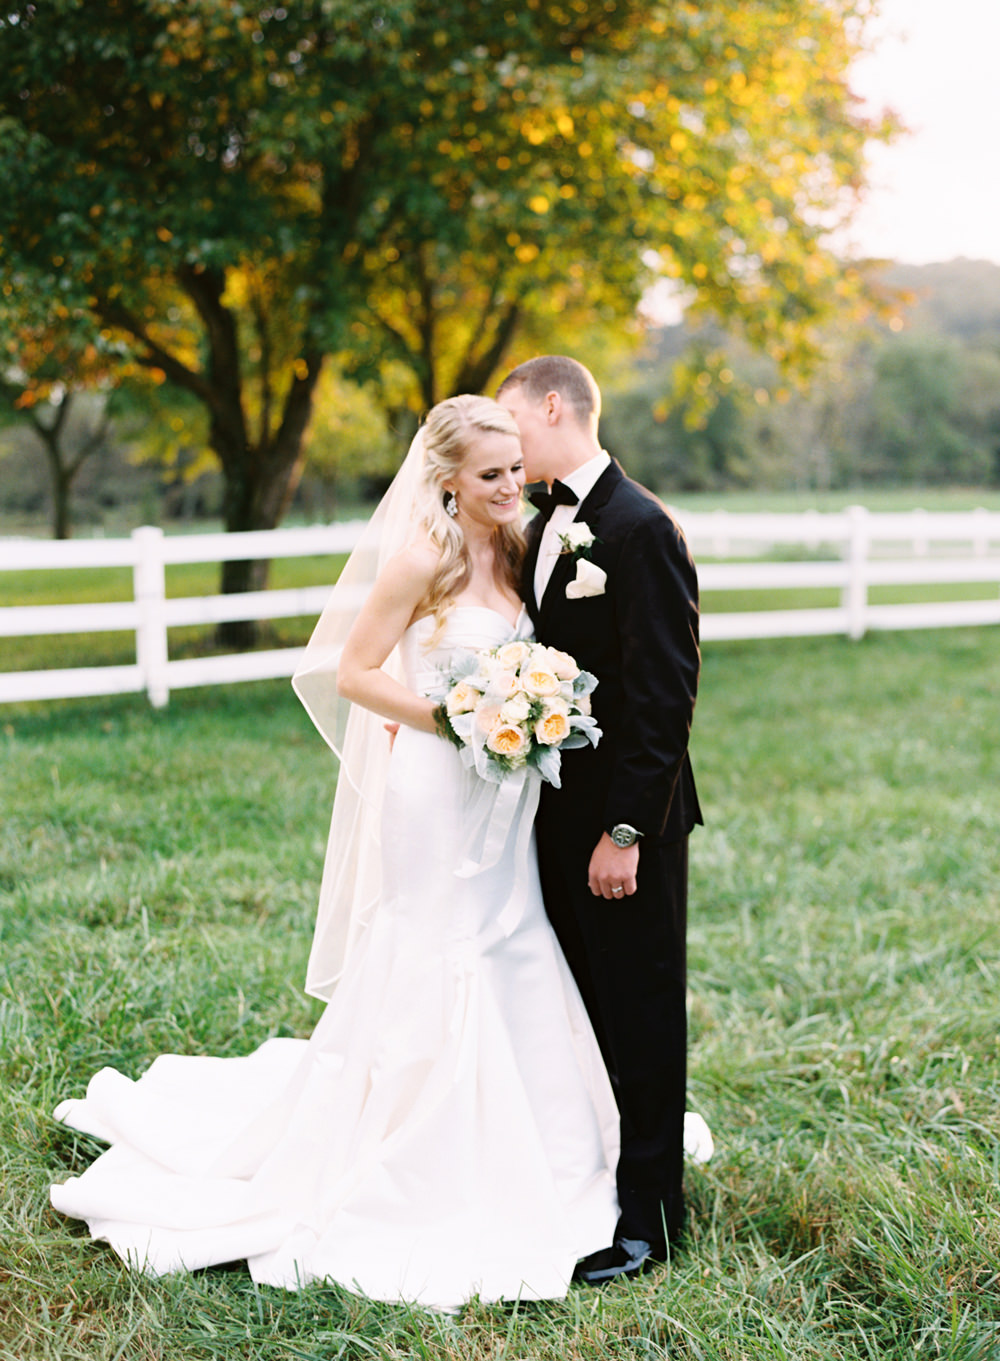 Elissa & Justin | Cottrell Photography